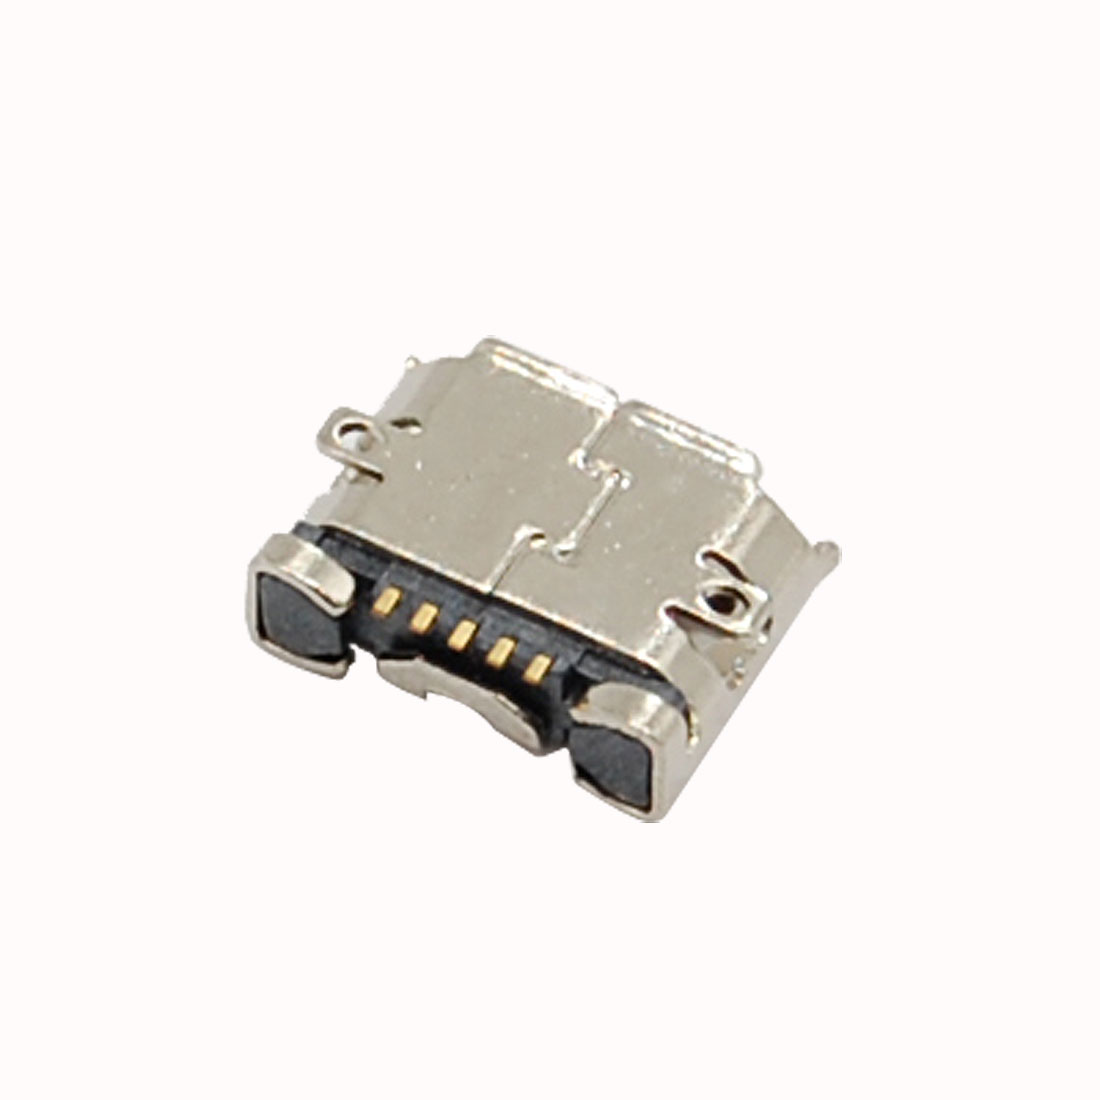 Replacement-Data-Port-Connector-for-Nokia-N78-8600